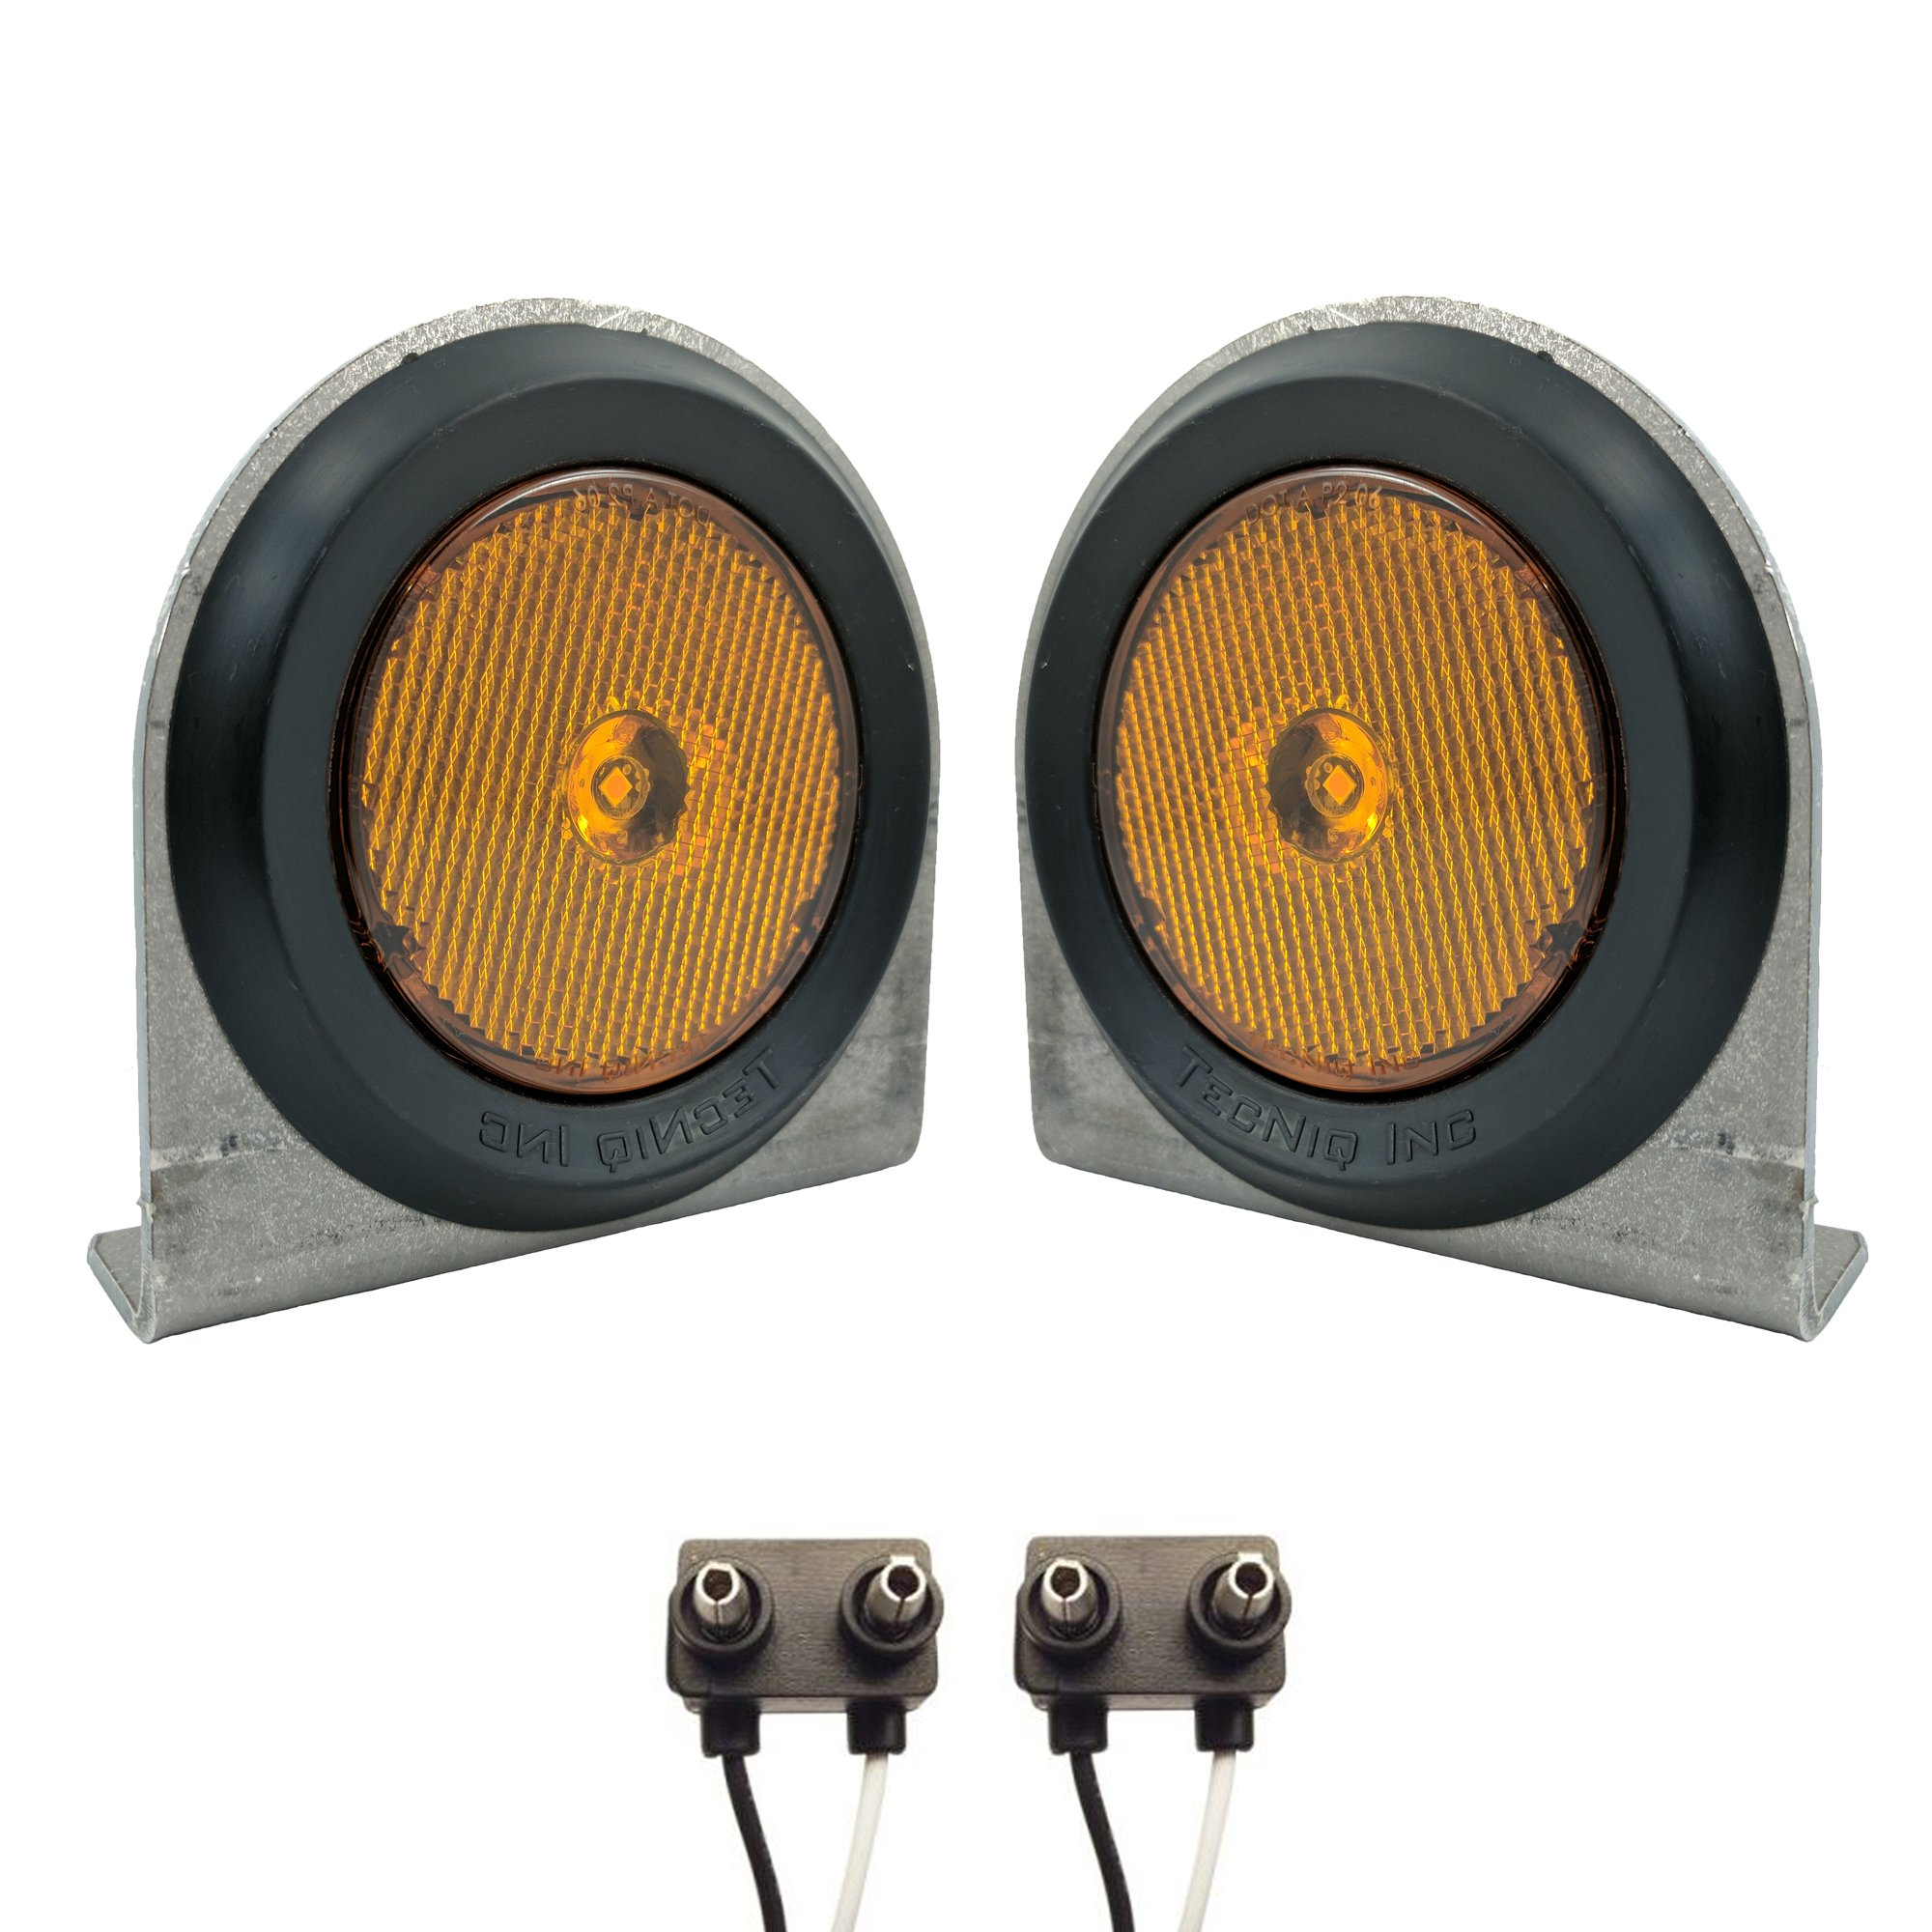 Pair of LED Low-Profile 2.5'' AMBER Side Markers - LED Light Kit w/ Steel Mounting Brackets, Wire Plugs, & Grommets - LED Trailer Truck RV Lights (2.5'' Round LED, Amber)